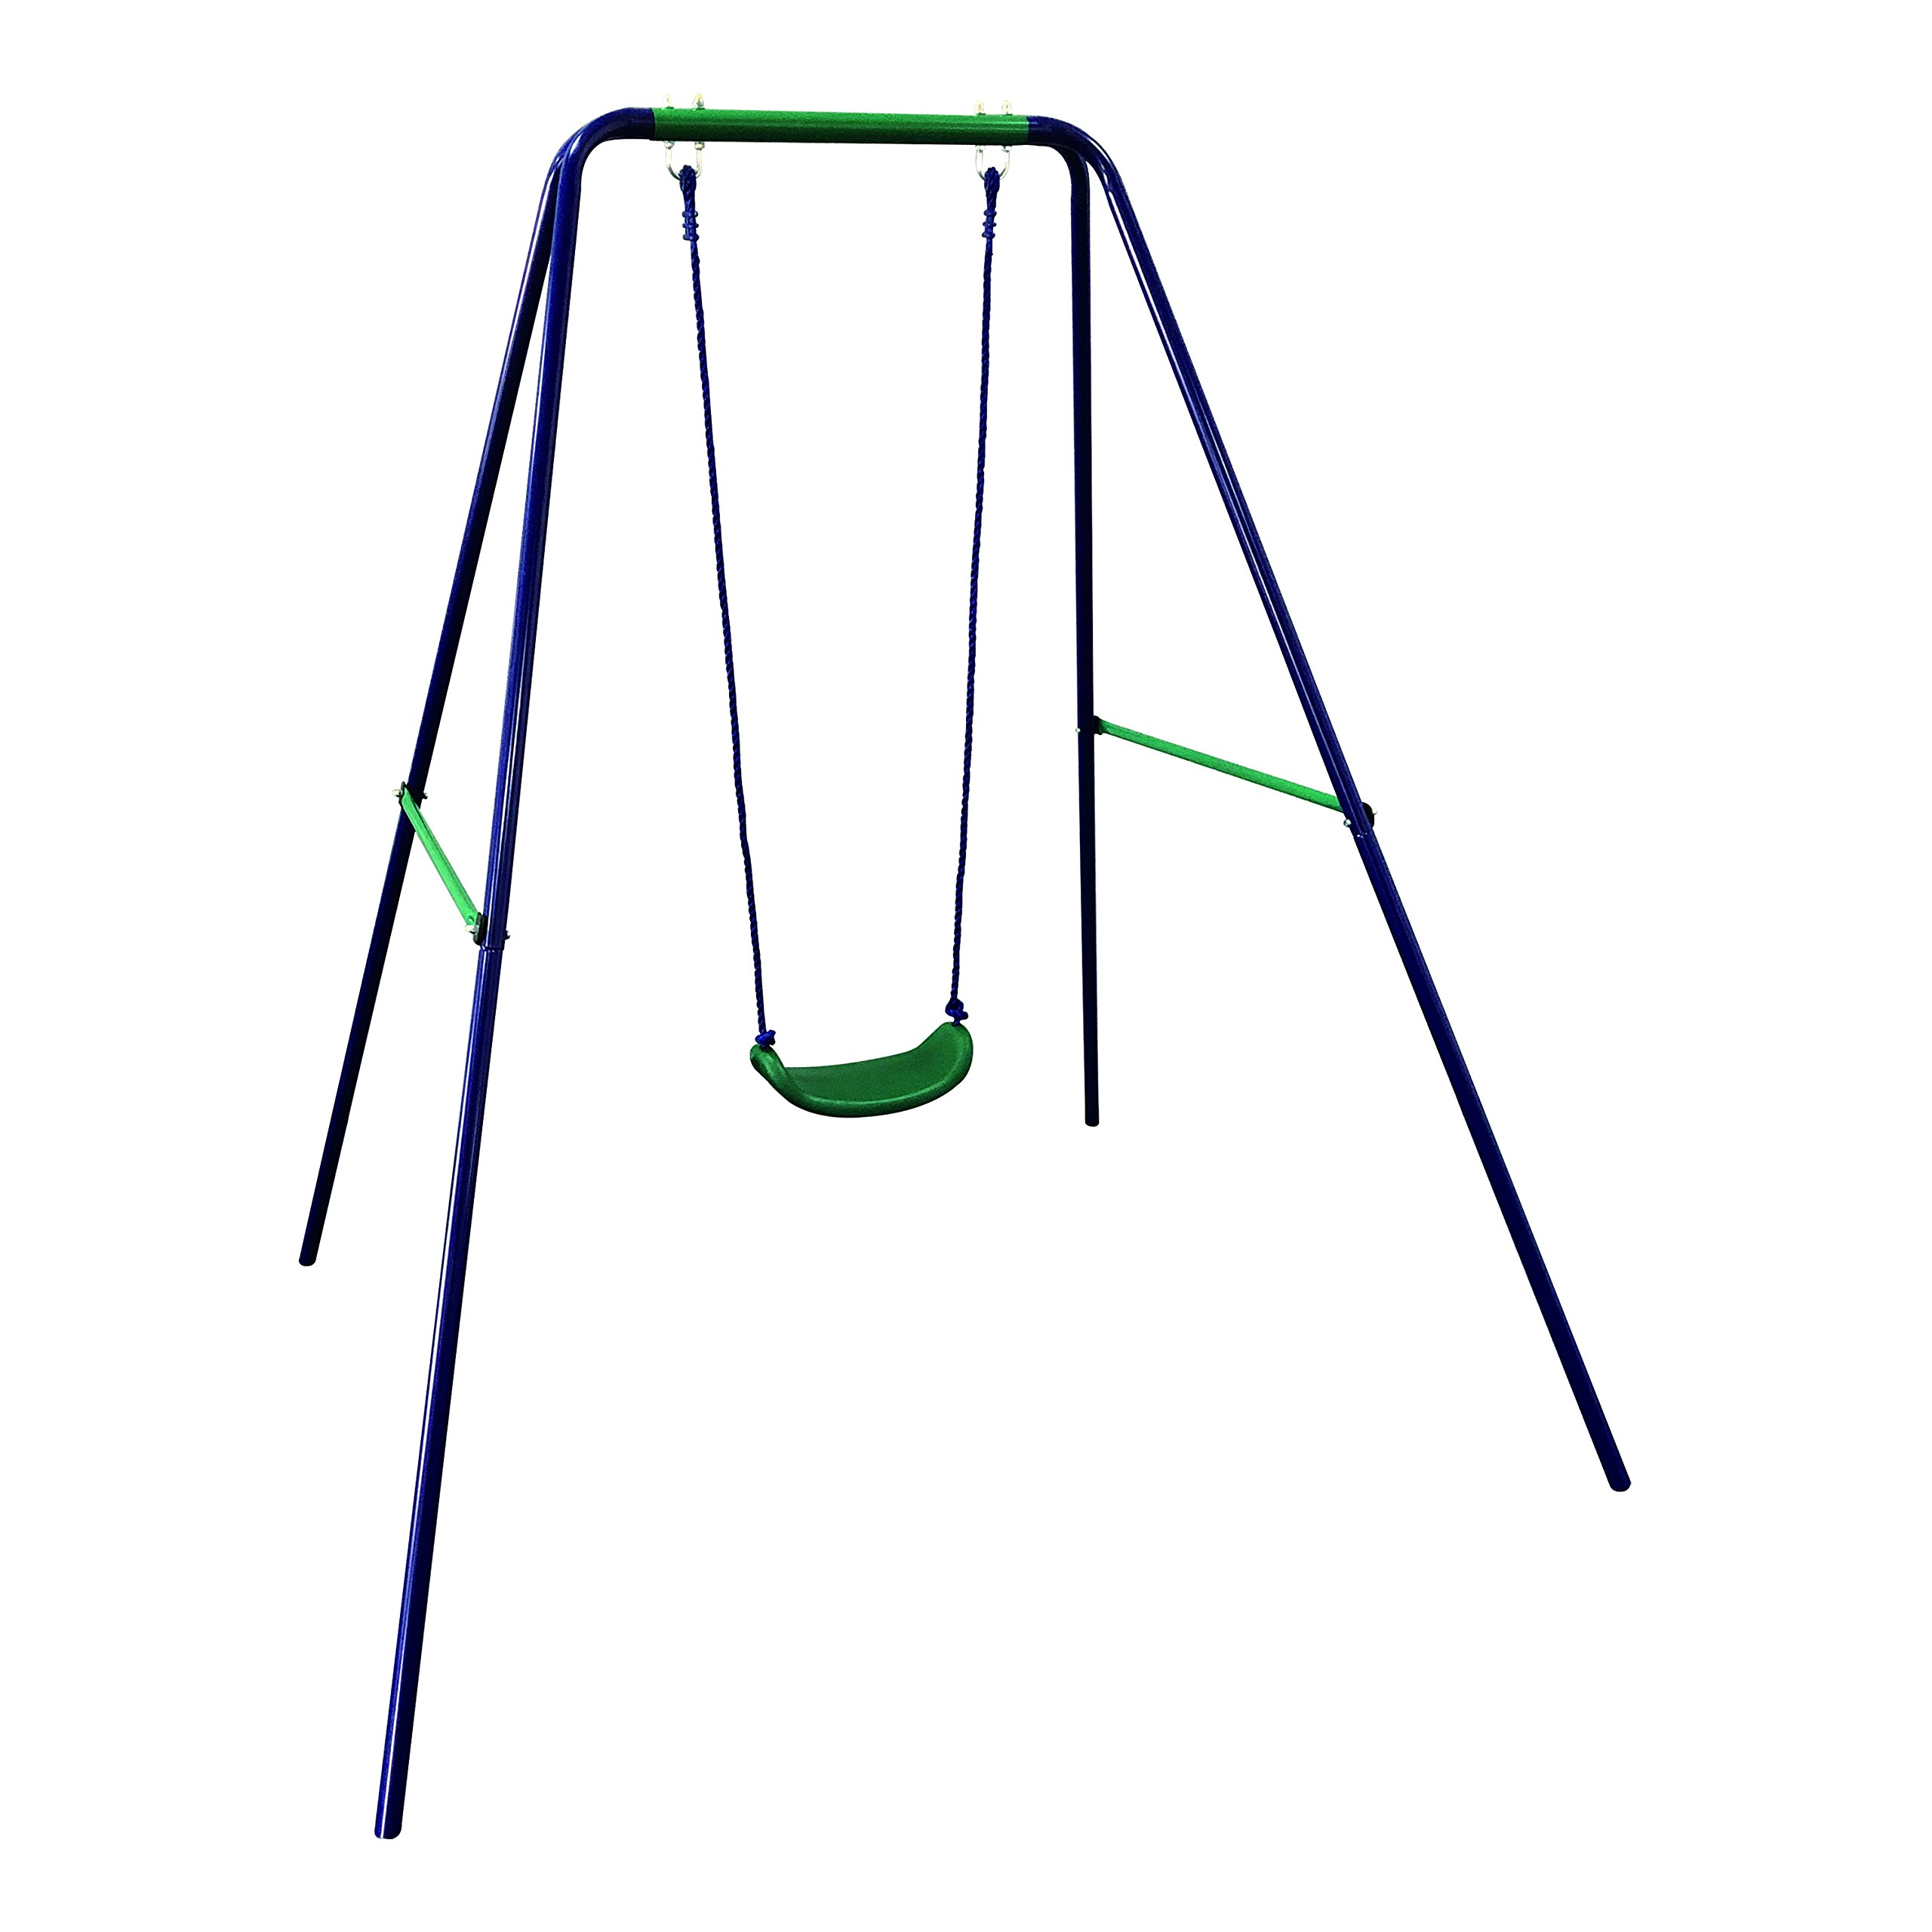 ALEKO BSW01 Child Baby Toddler Outdoor Swing Playground Accessory Blue and Green by ALEKO